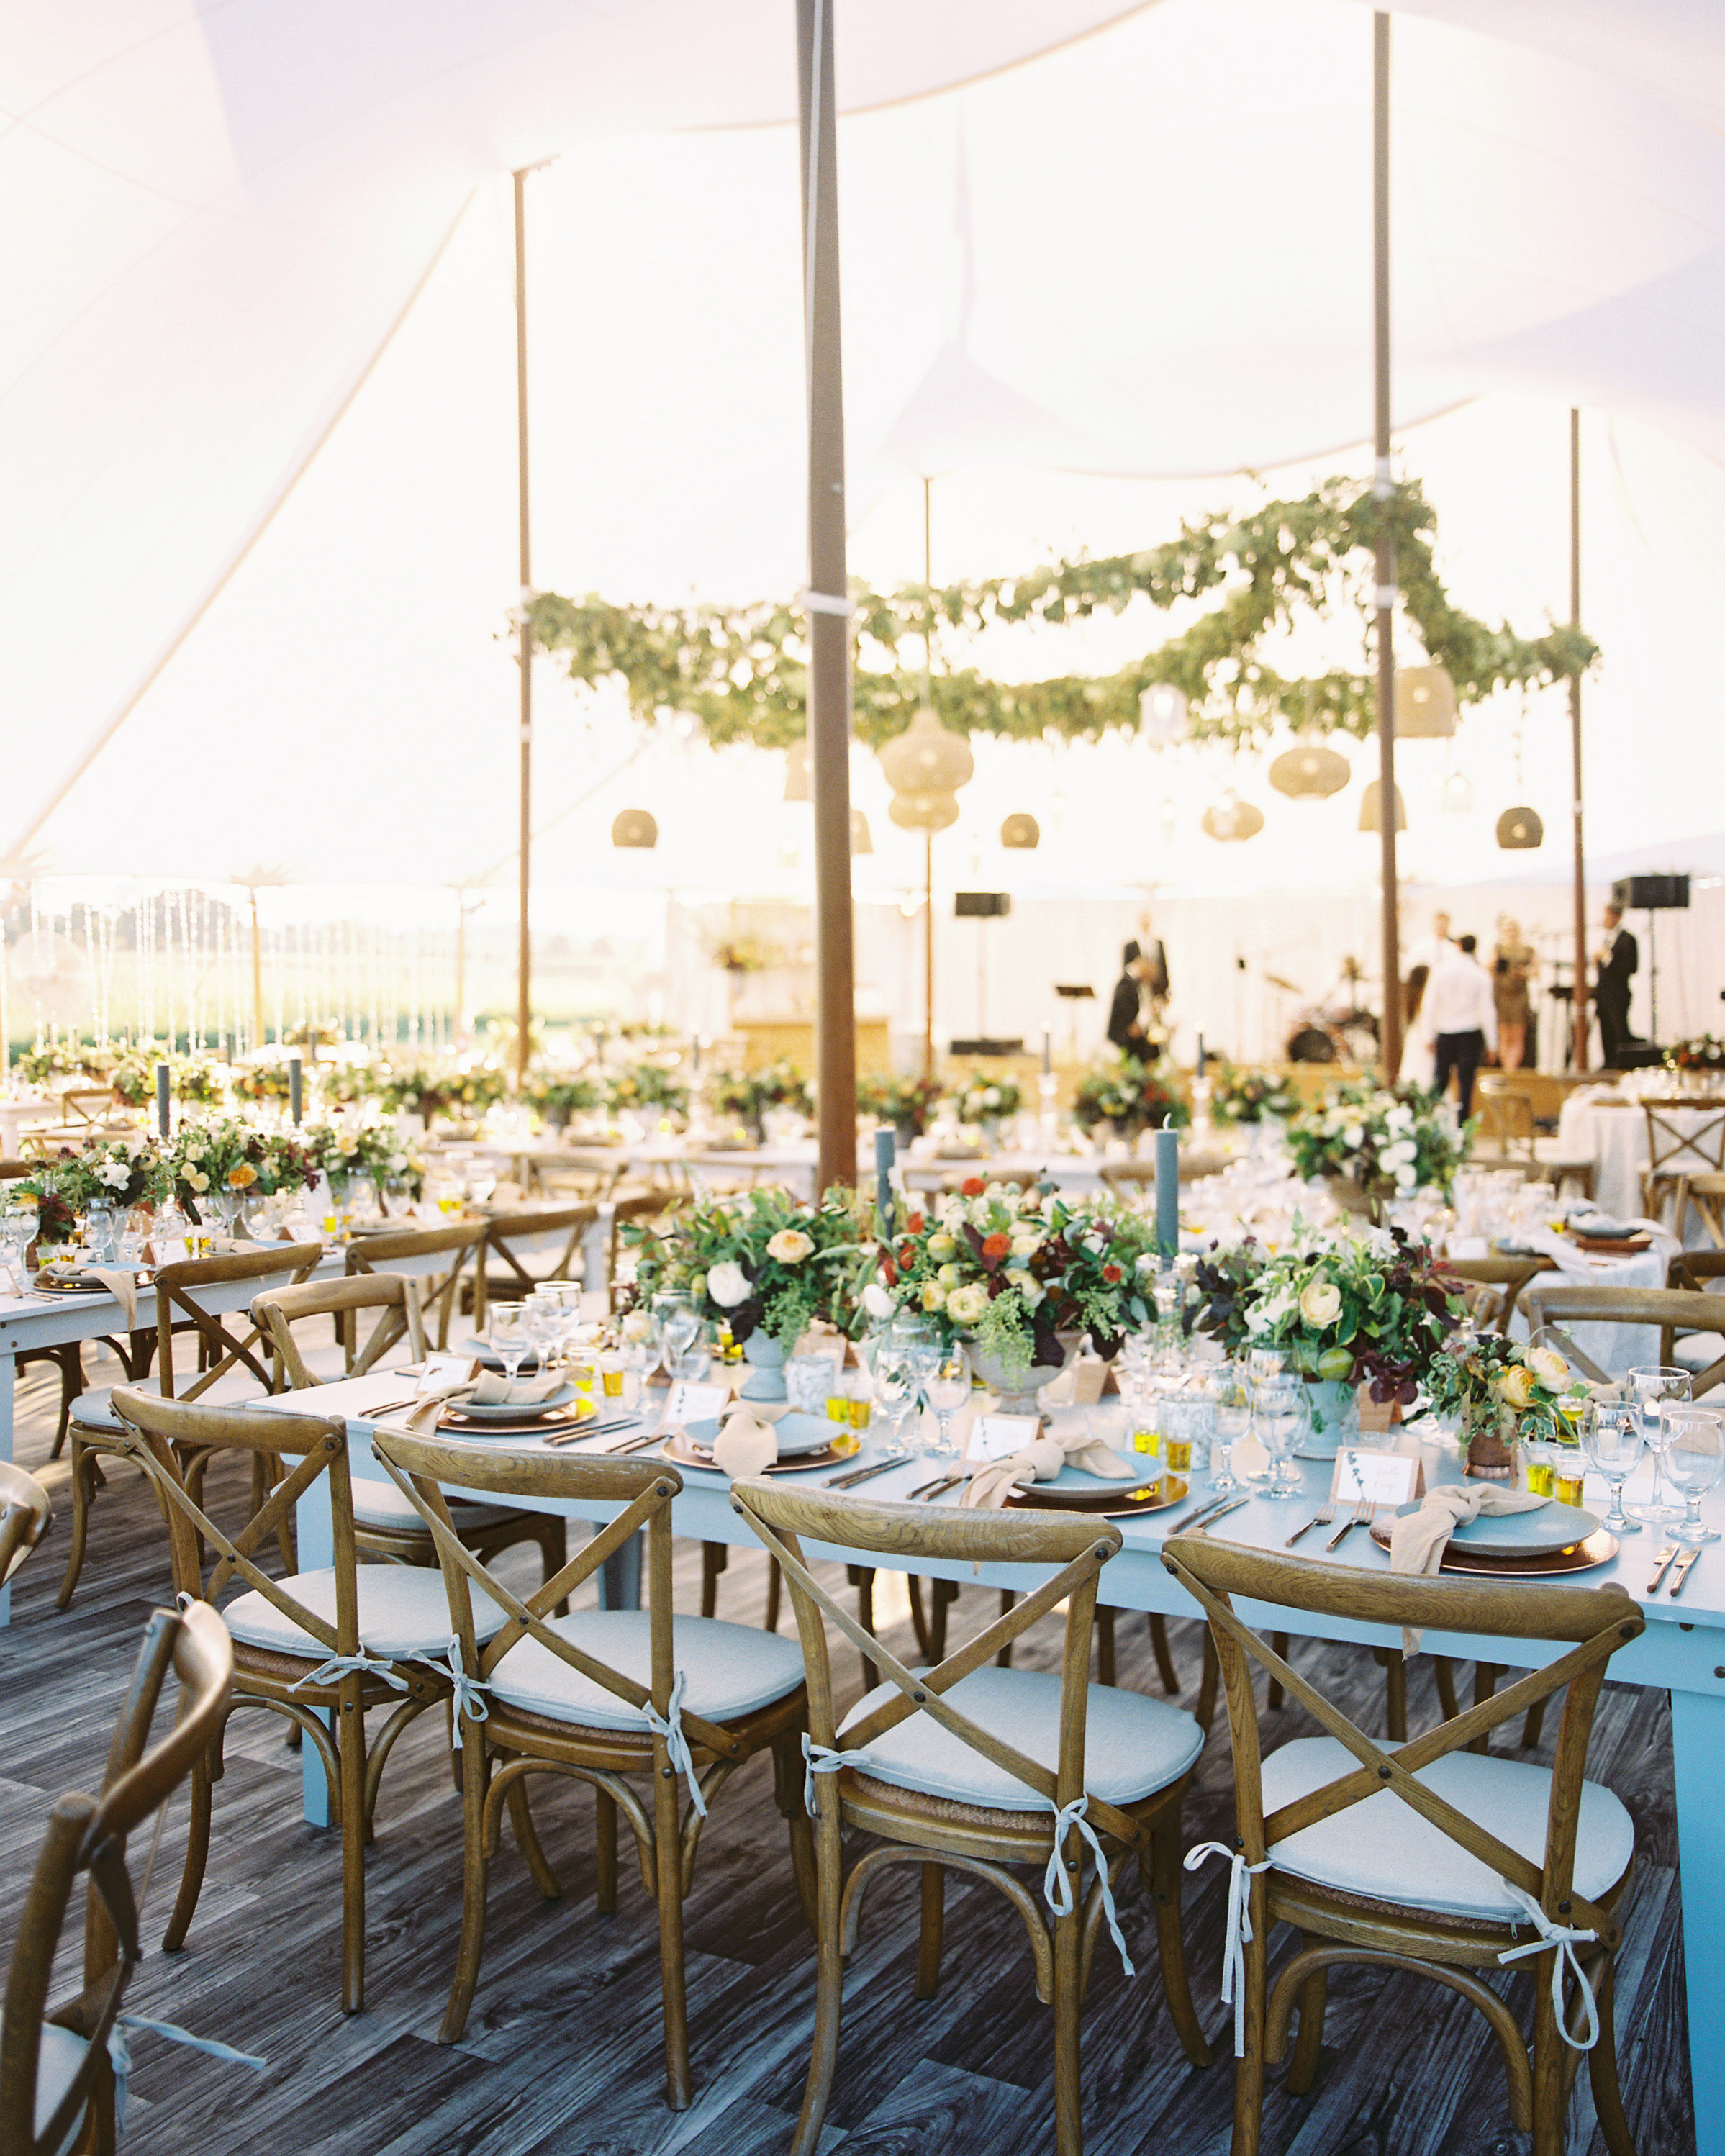 Ideas For Wedding Reception Without Dancing: A Laid-Back Late Summer Wedding On A Virginia Farm